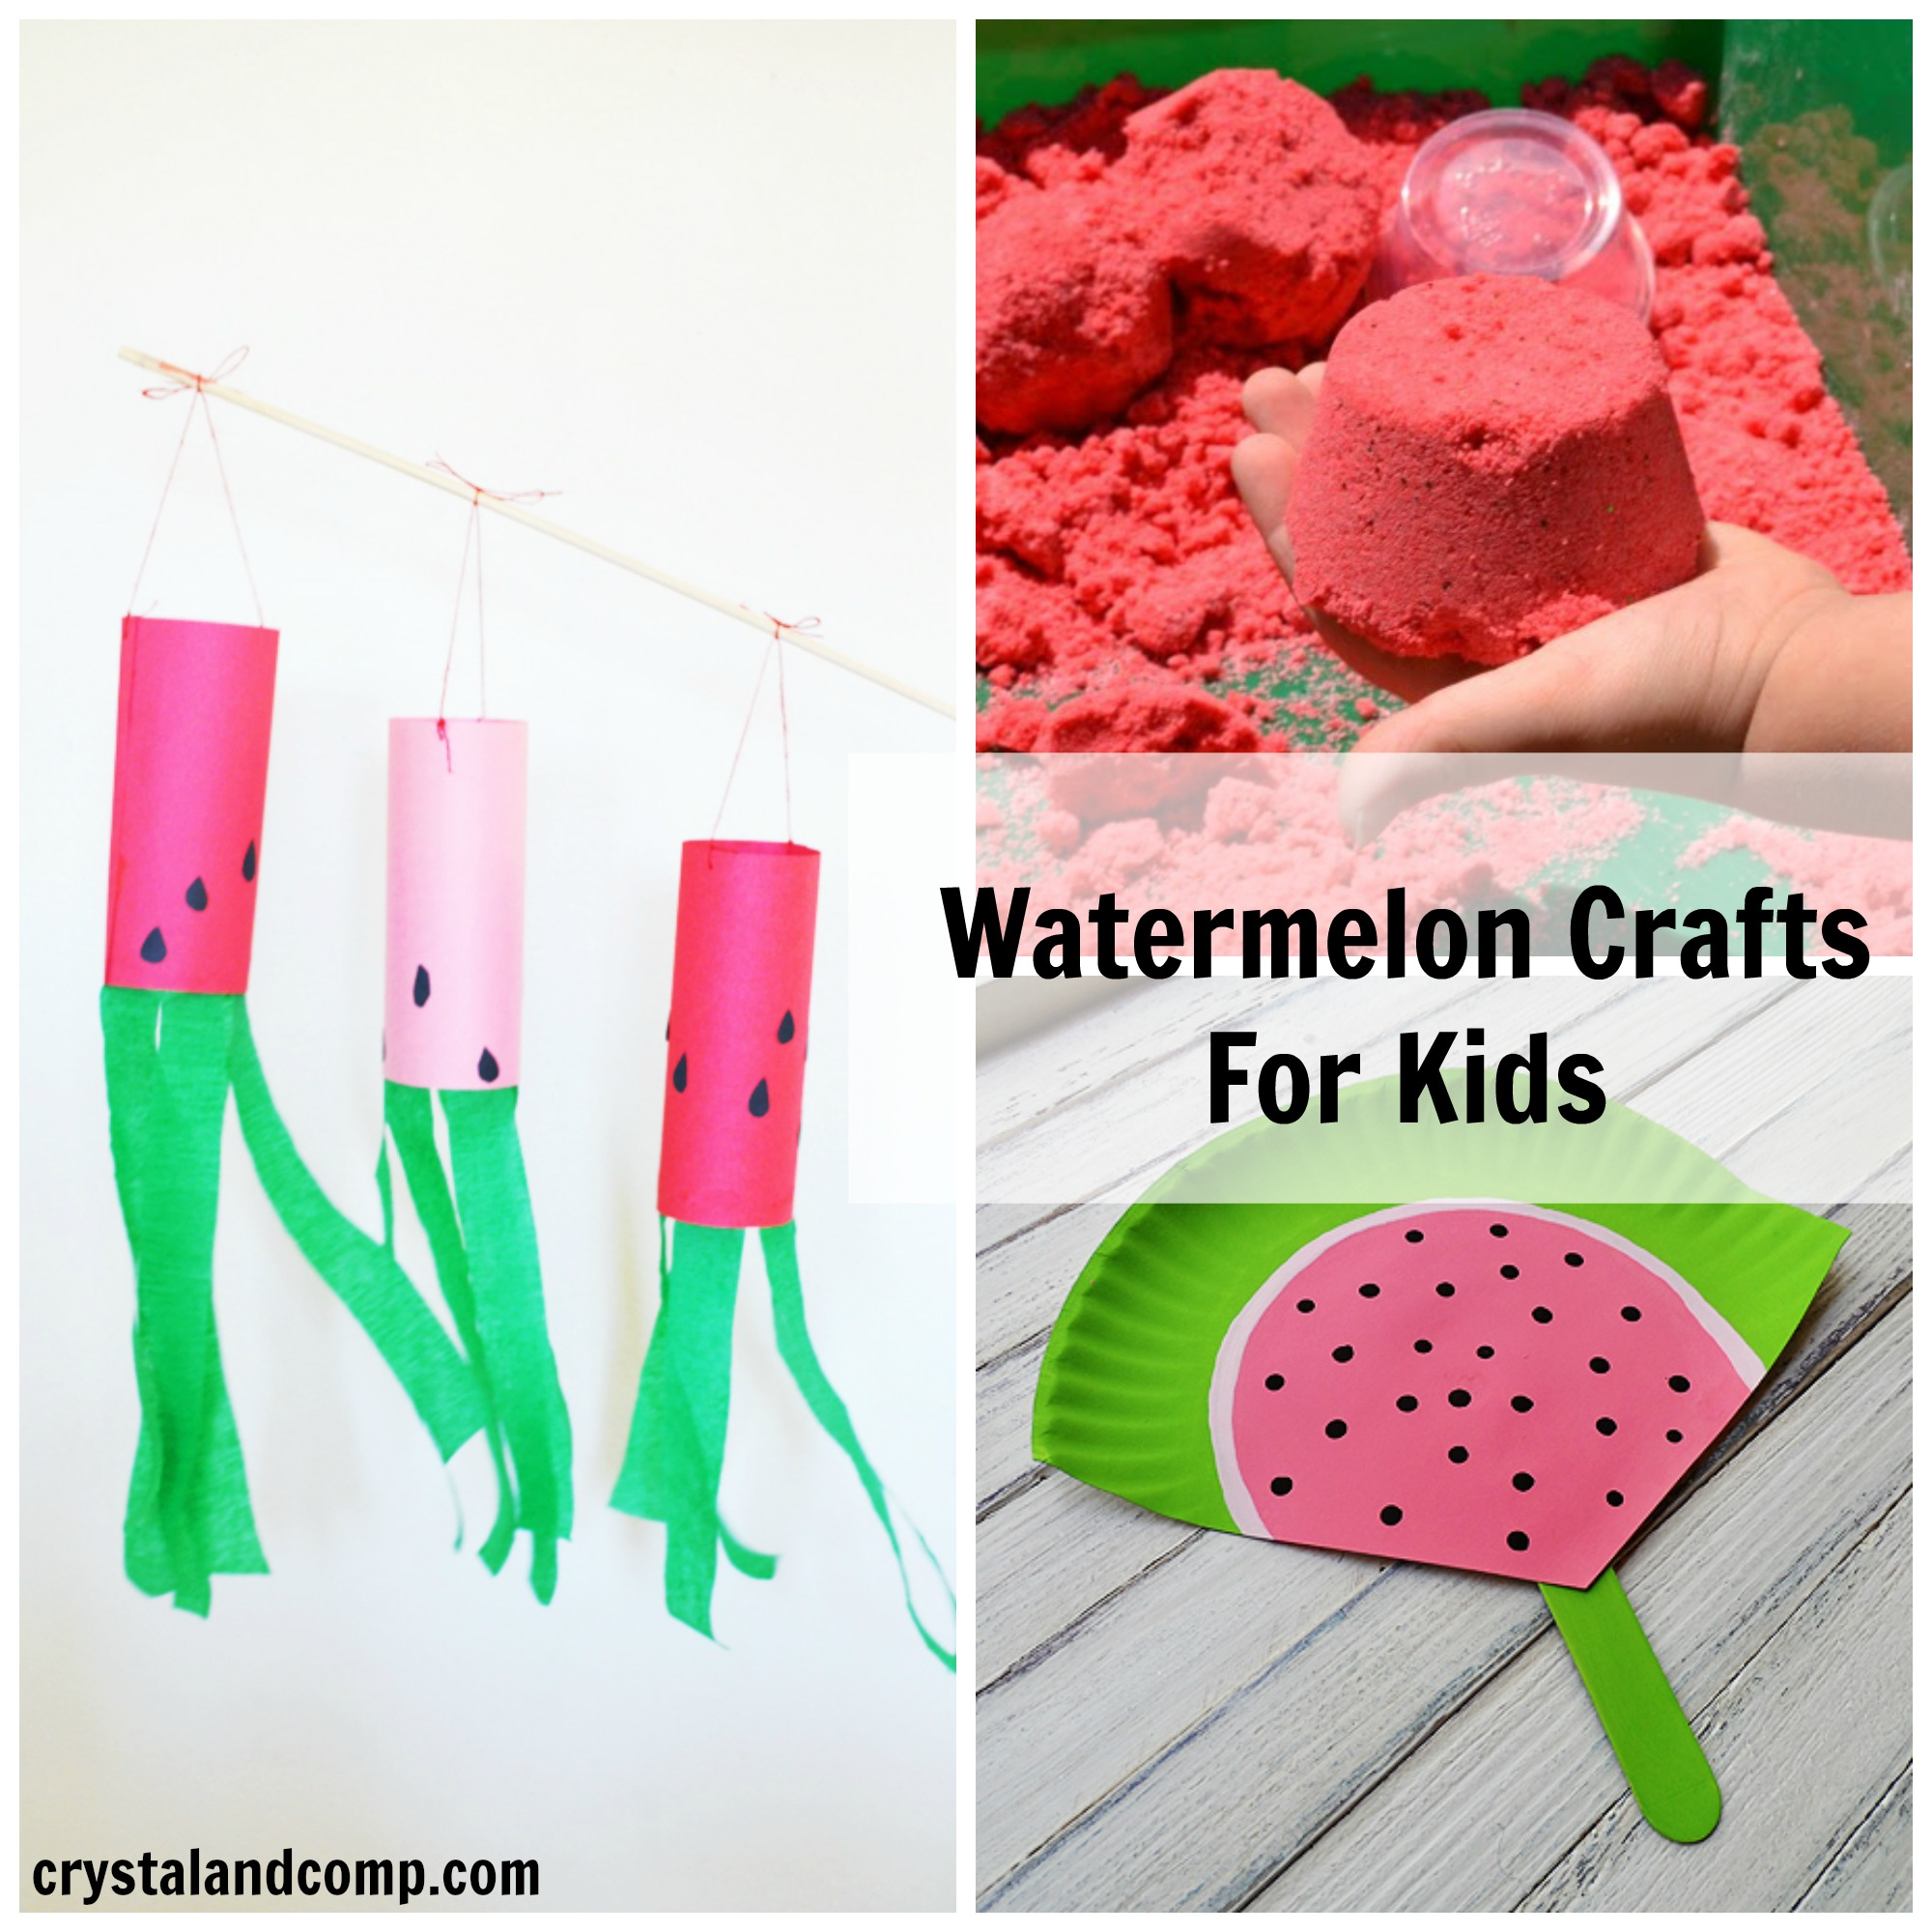 21 Watermelon Arts And Crafts For Kids Crystalandcomp Com